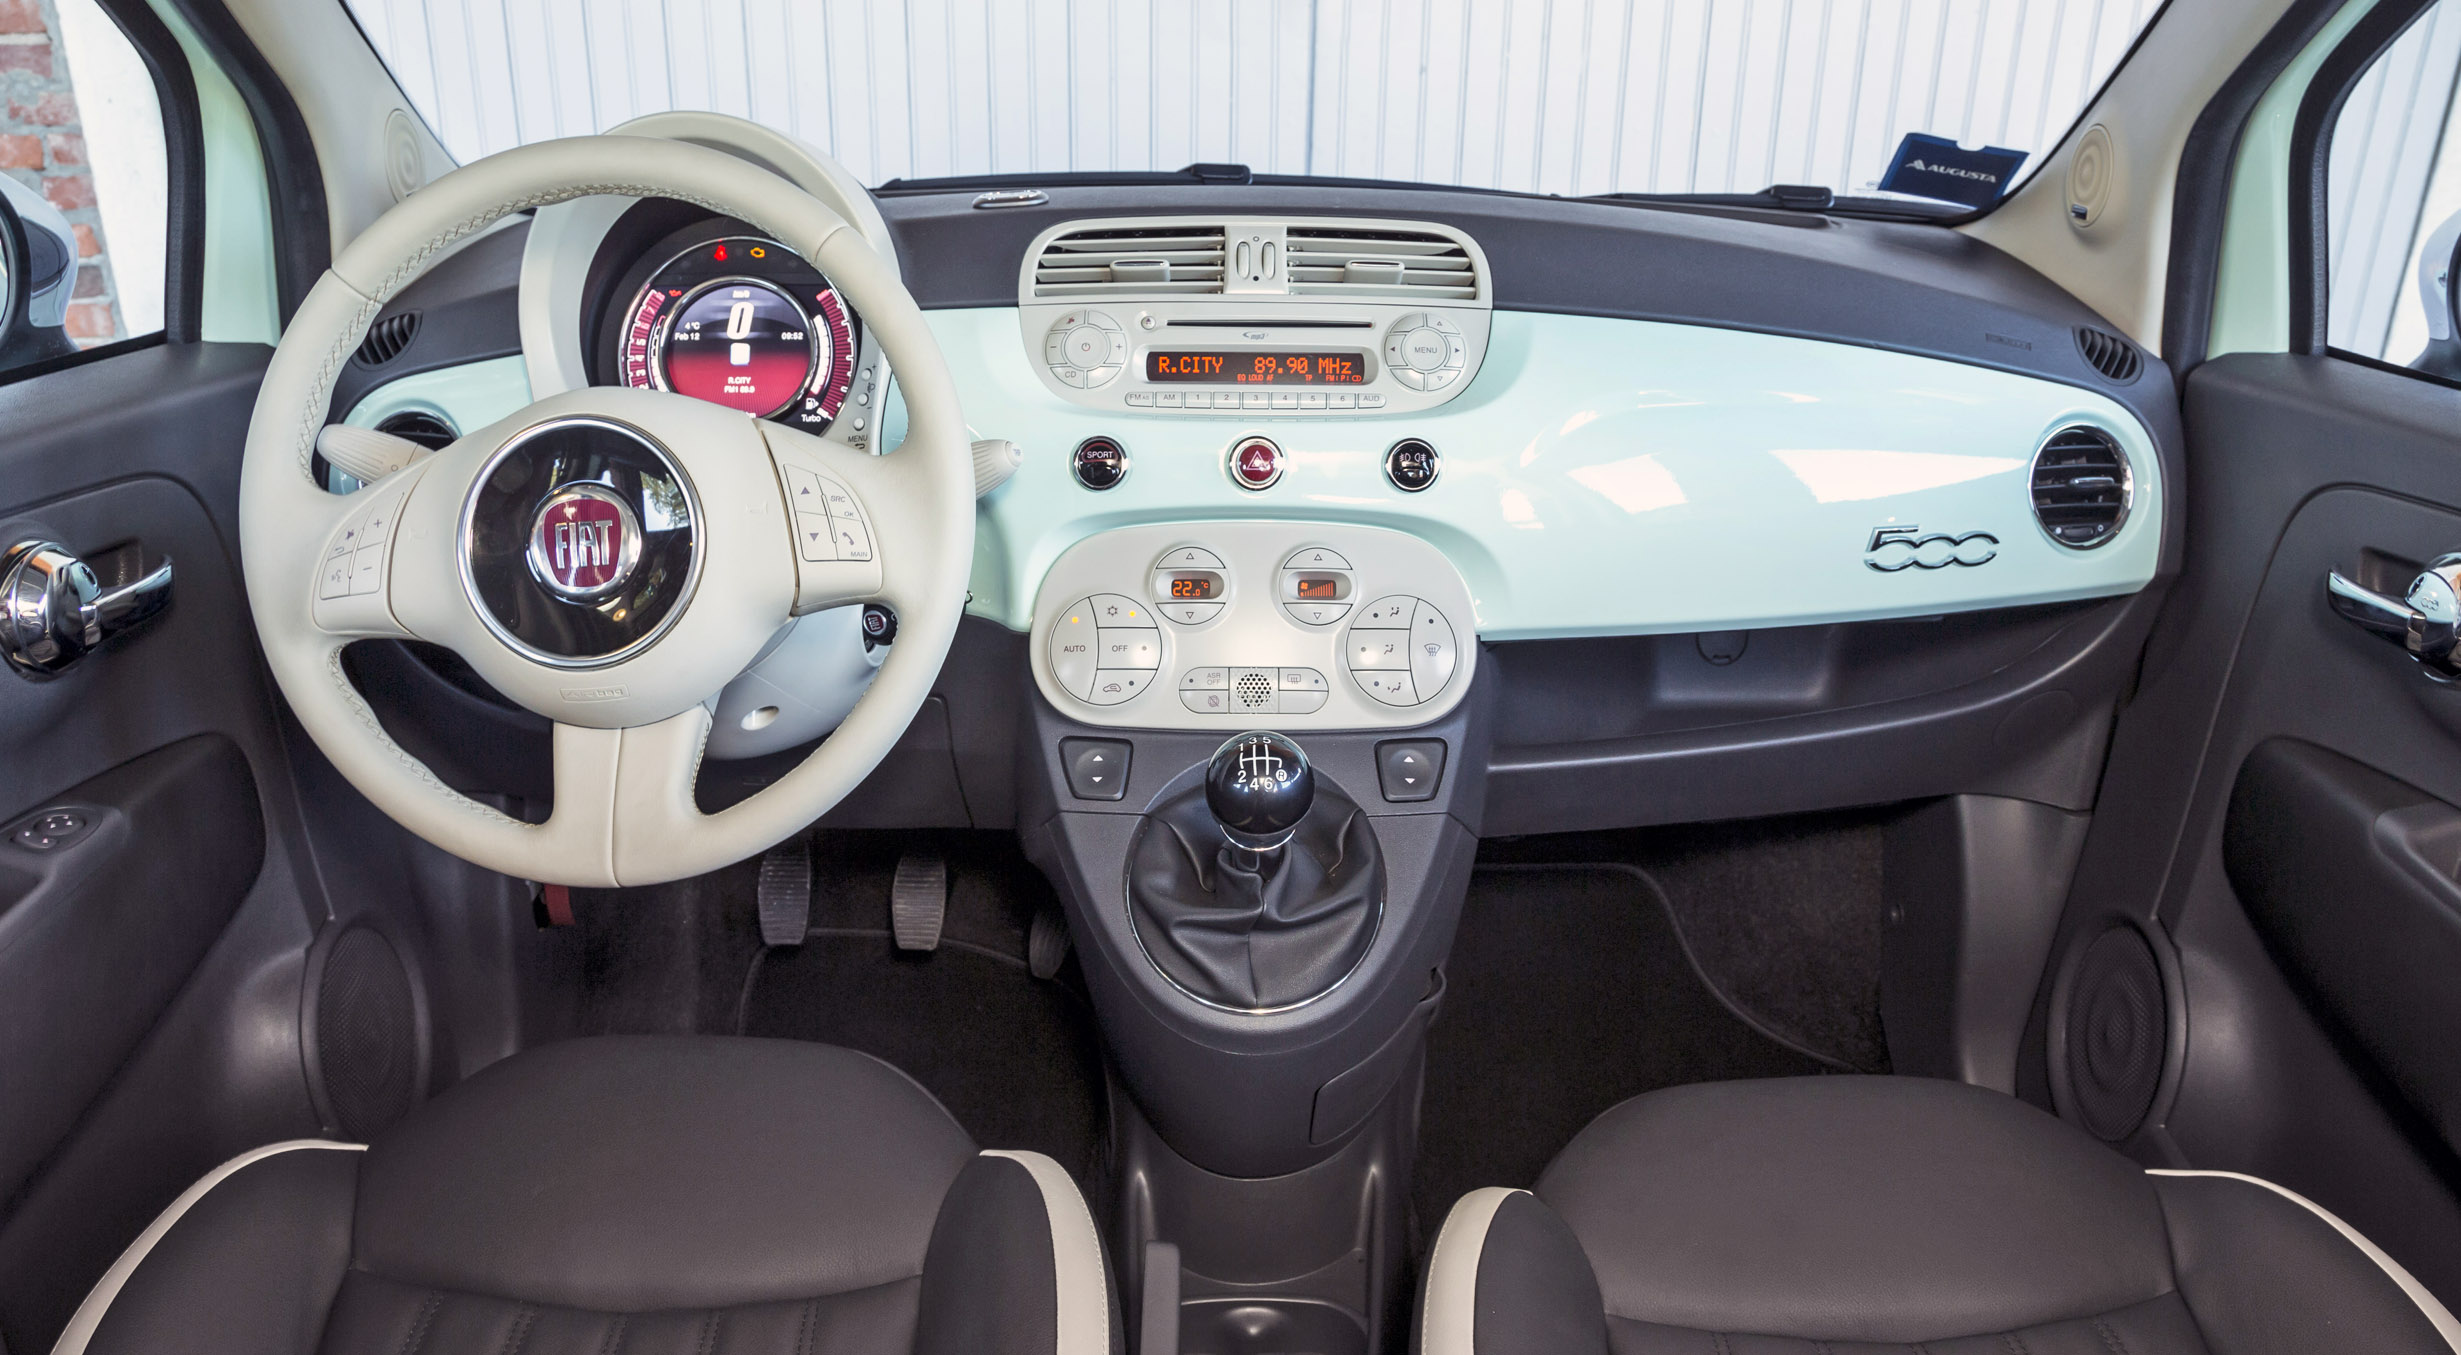 Quelle fiat 500 choisir for Fiat 500 x interieur